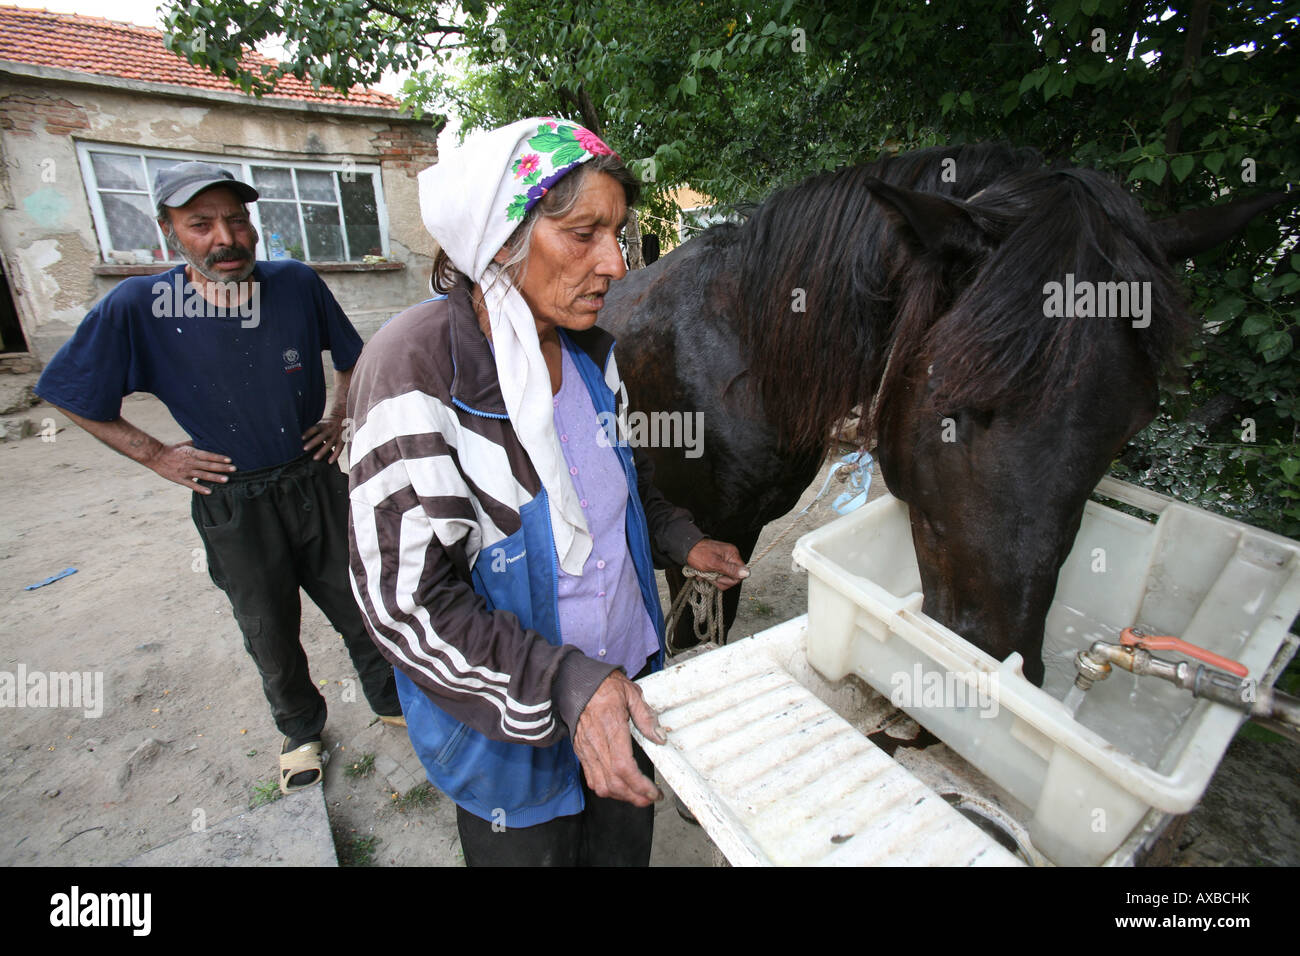 Two million gypsies are living in Bulgaria which is 10 of the population Gypsies or Roma are discriminated by native - Stock Image